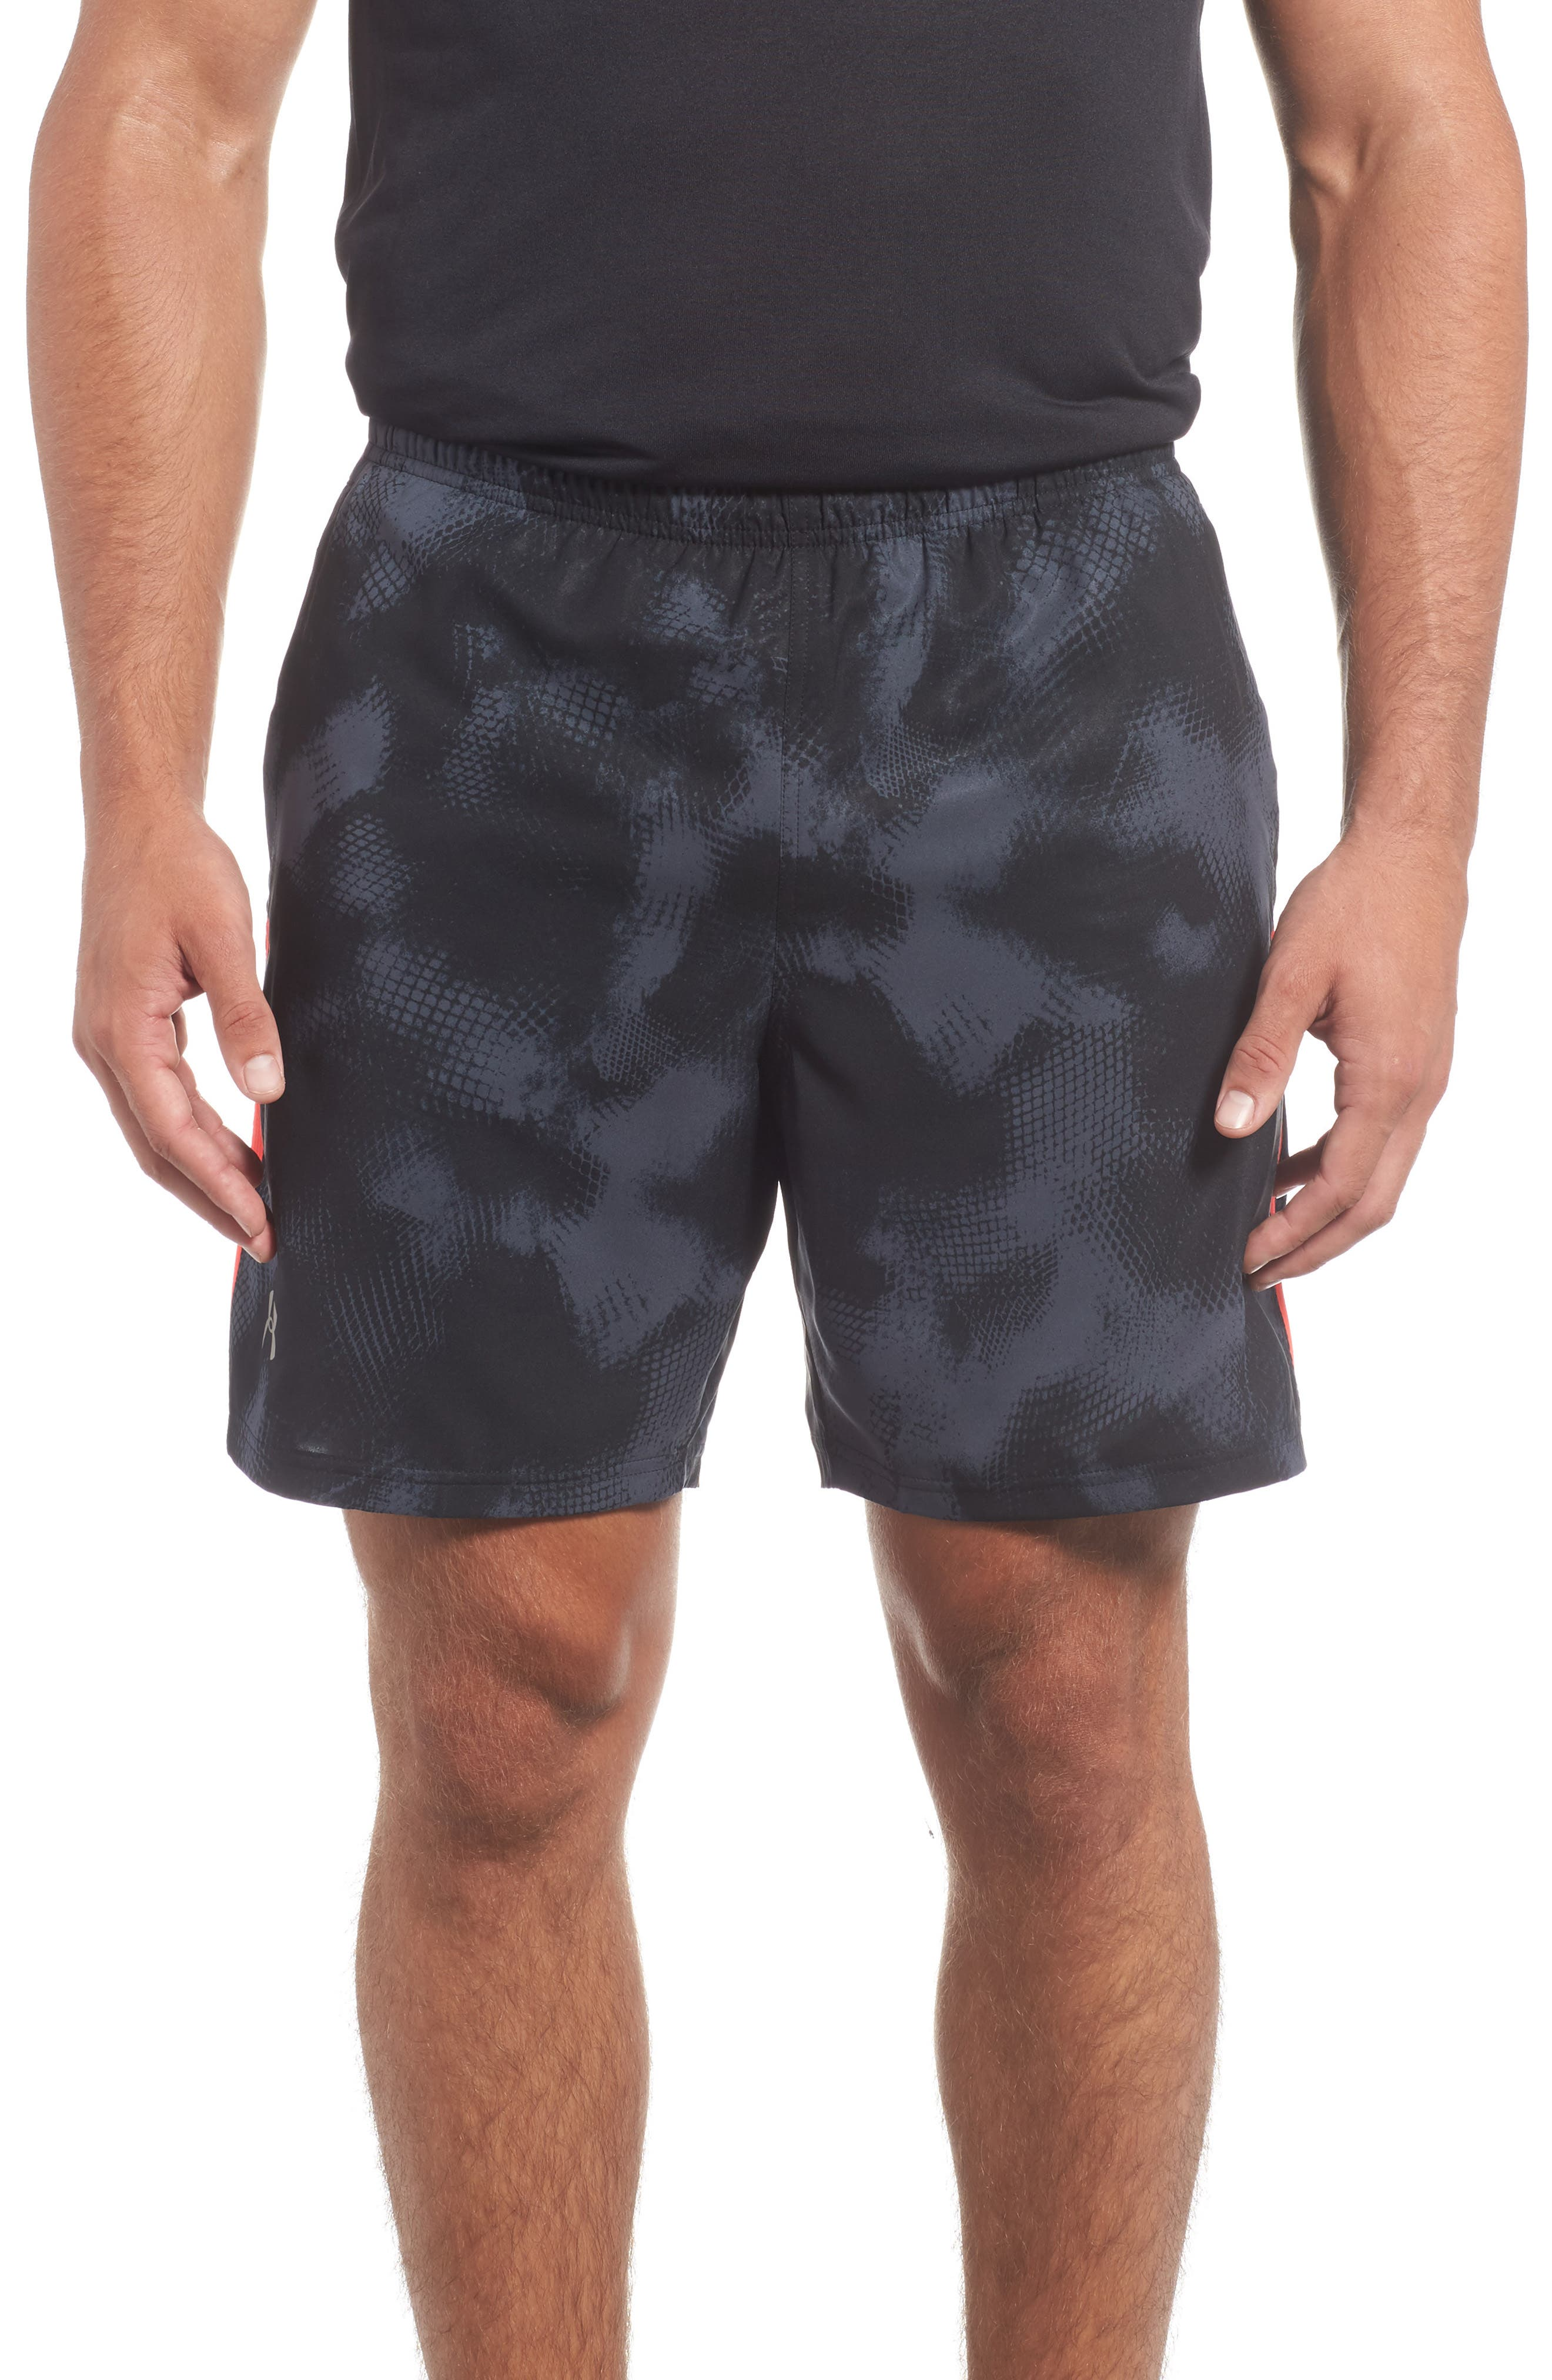 Launch Running Shorts,                             Main thumbnail 1, color,                             Black/ Red/ Reflective